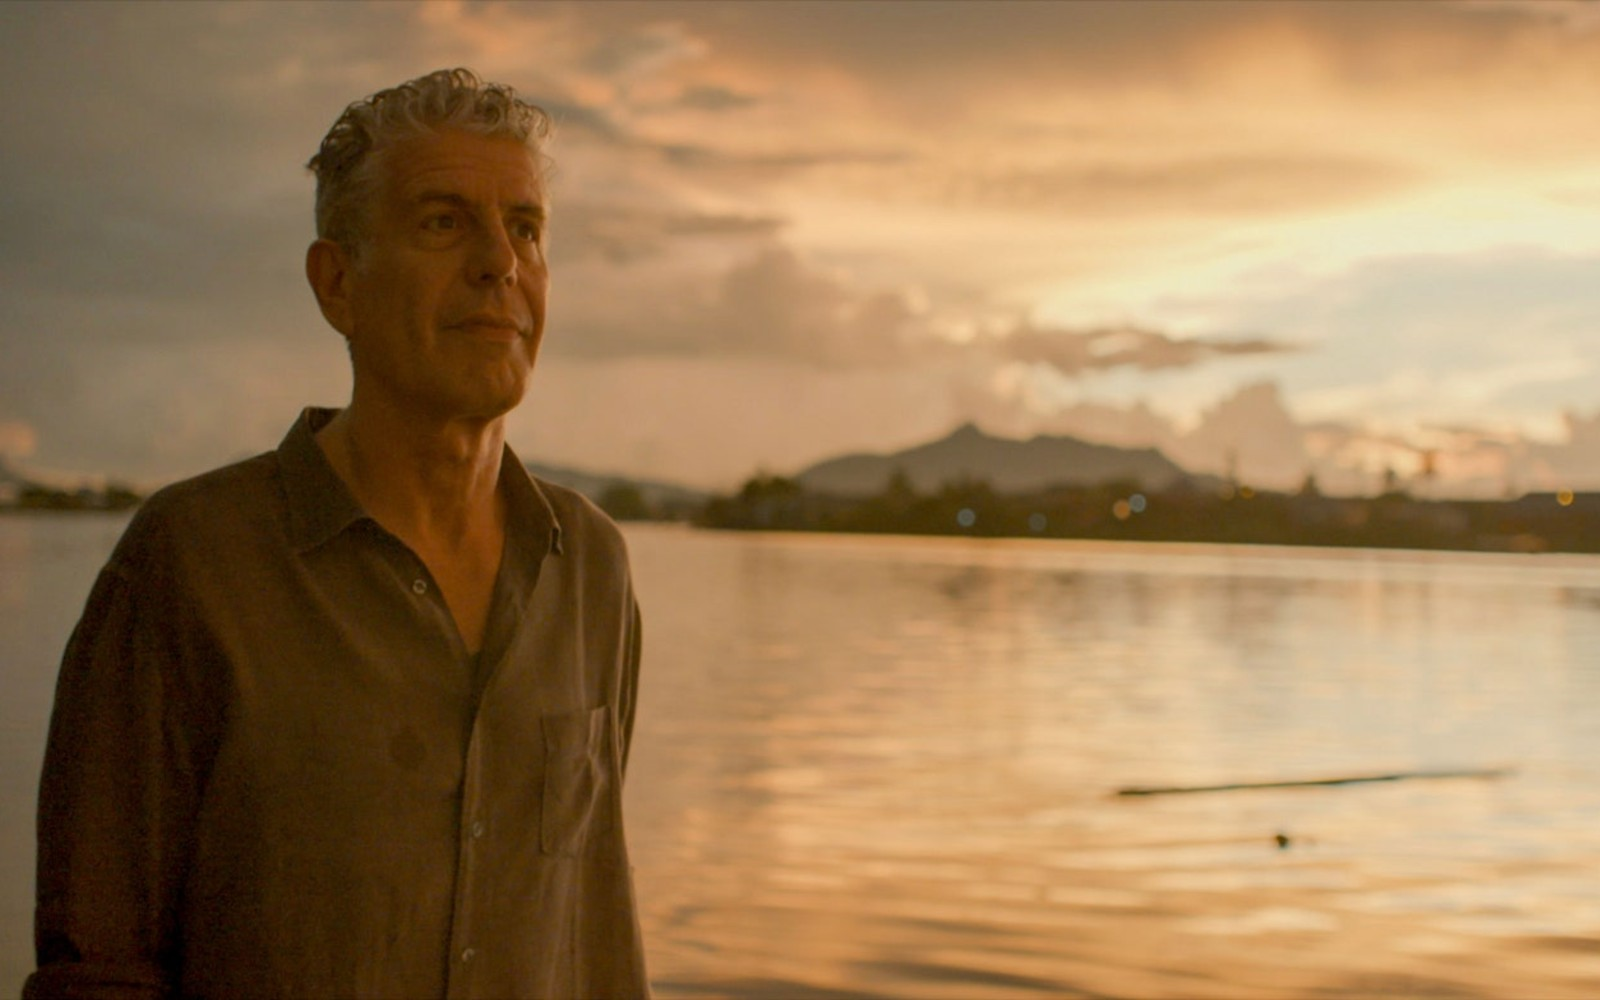 Anthony Bourdain's new documentary 'Roadrunner' relies in part on deep audio